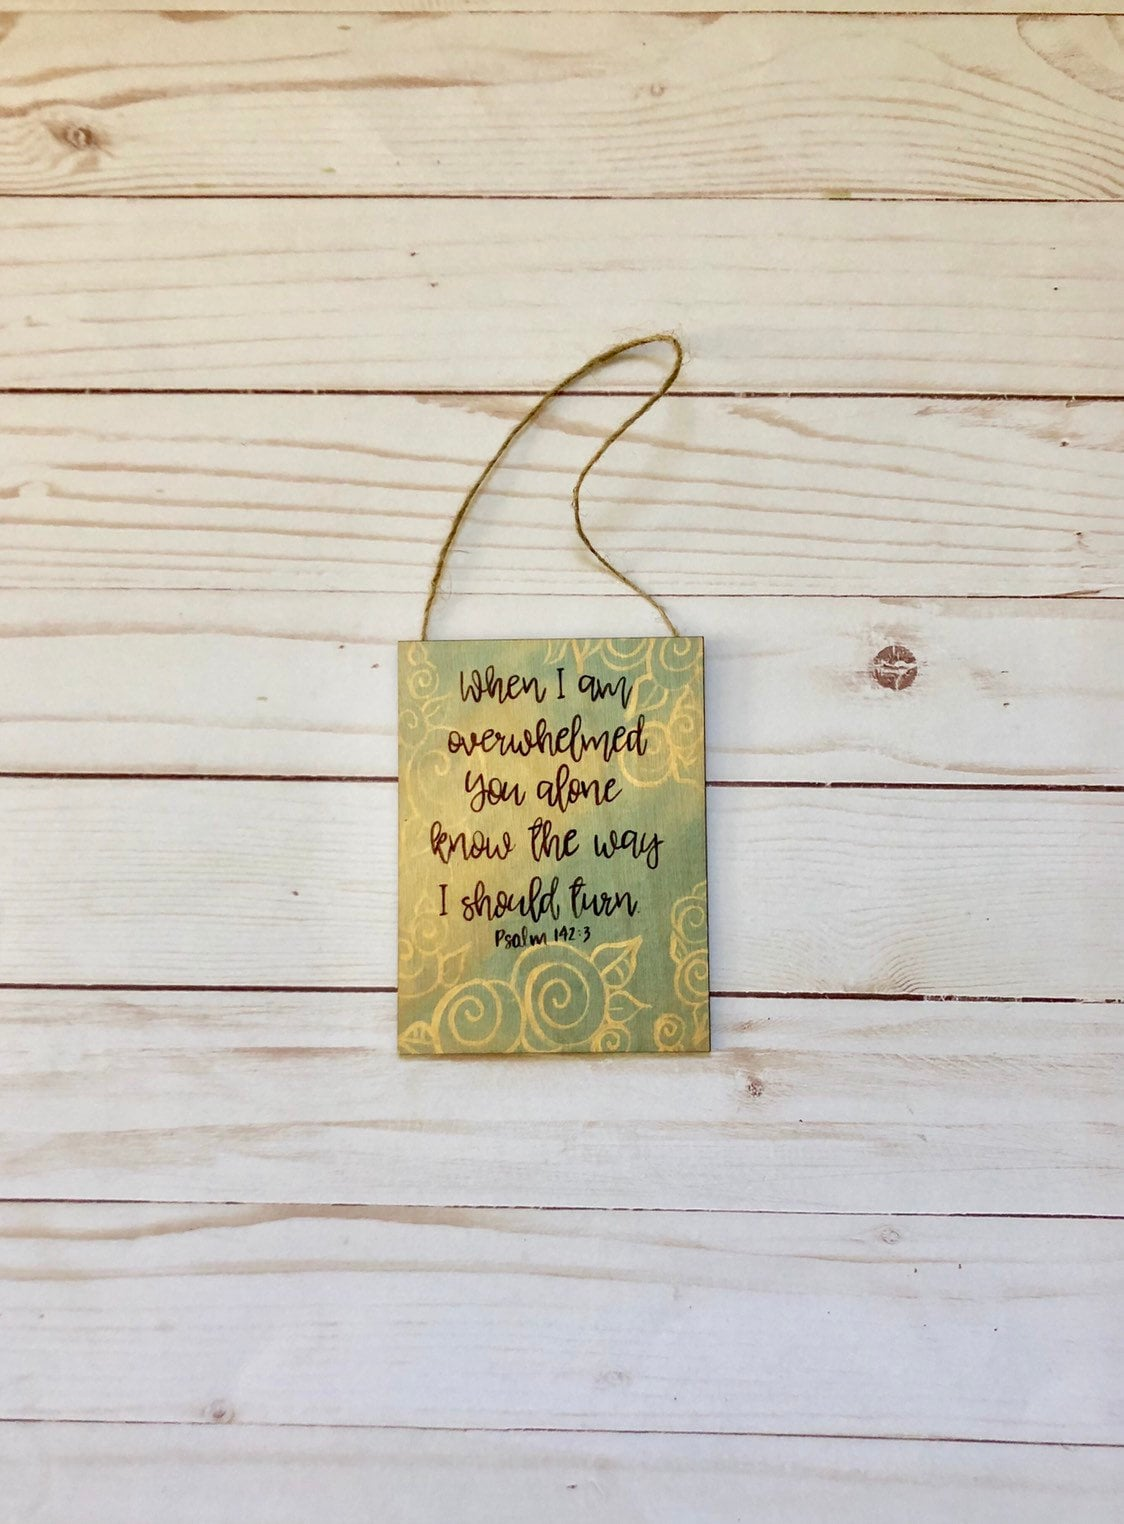 Encouragement Bible Verse Wall Art Small Wood Scripture Wall Sign Lead Me Lord Religious Rustic Decor Cancer Gift Christian Motivation